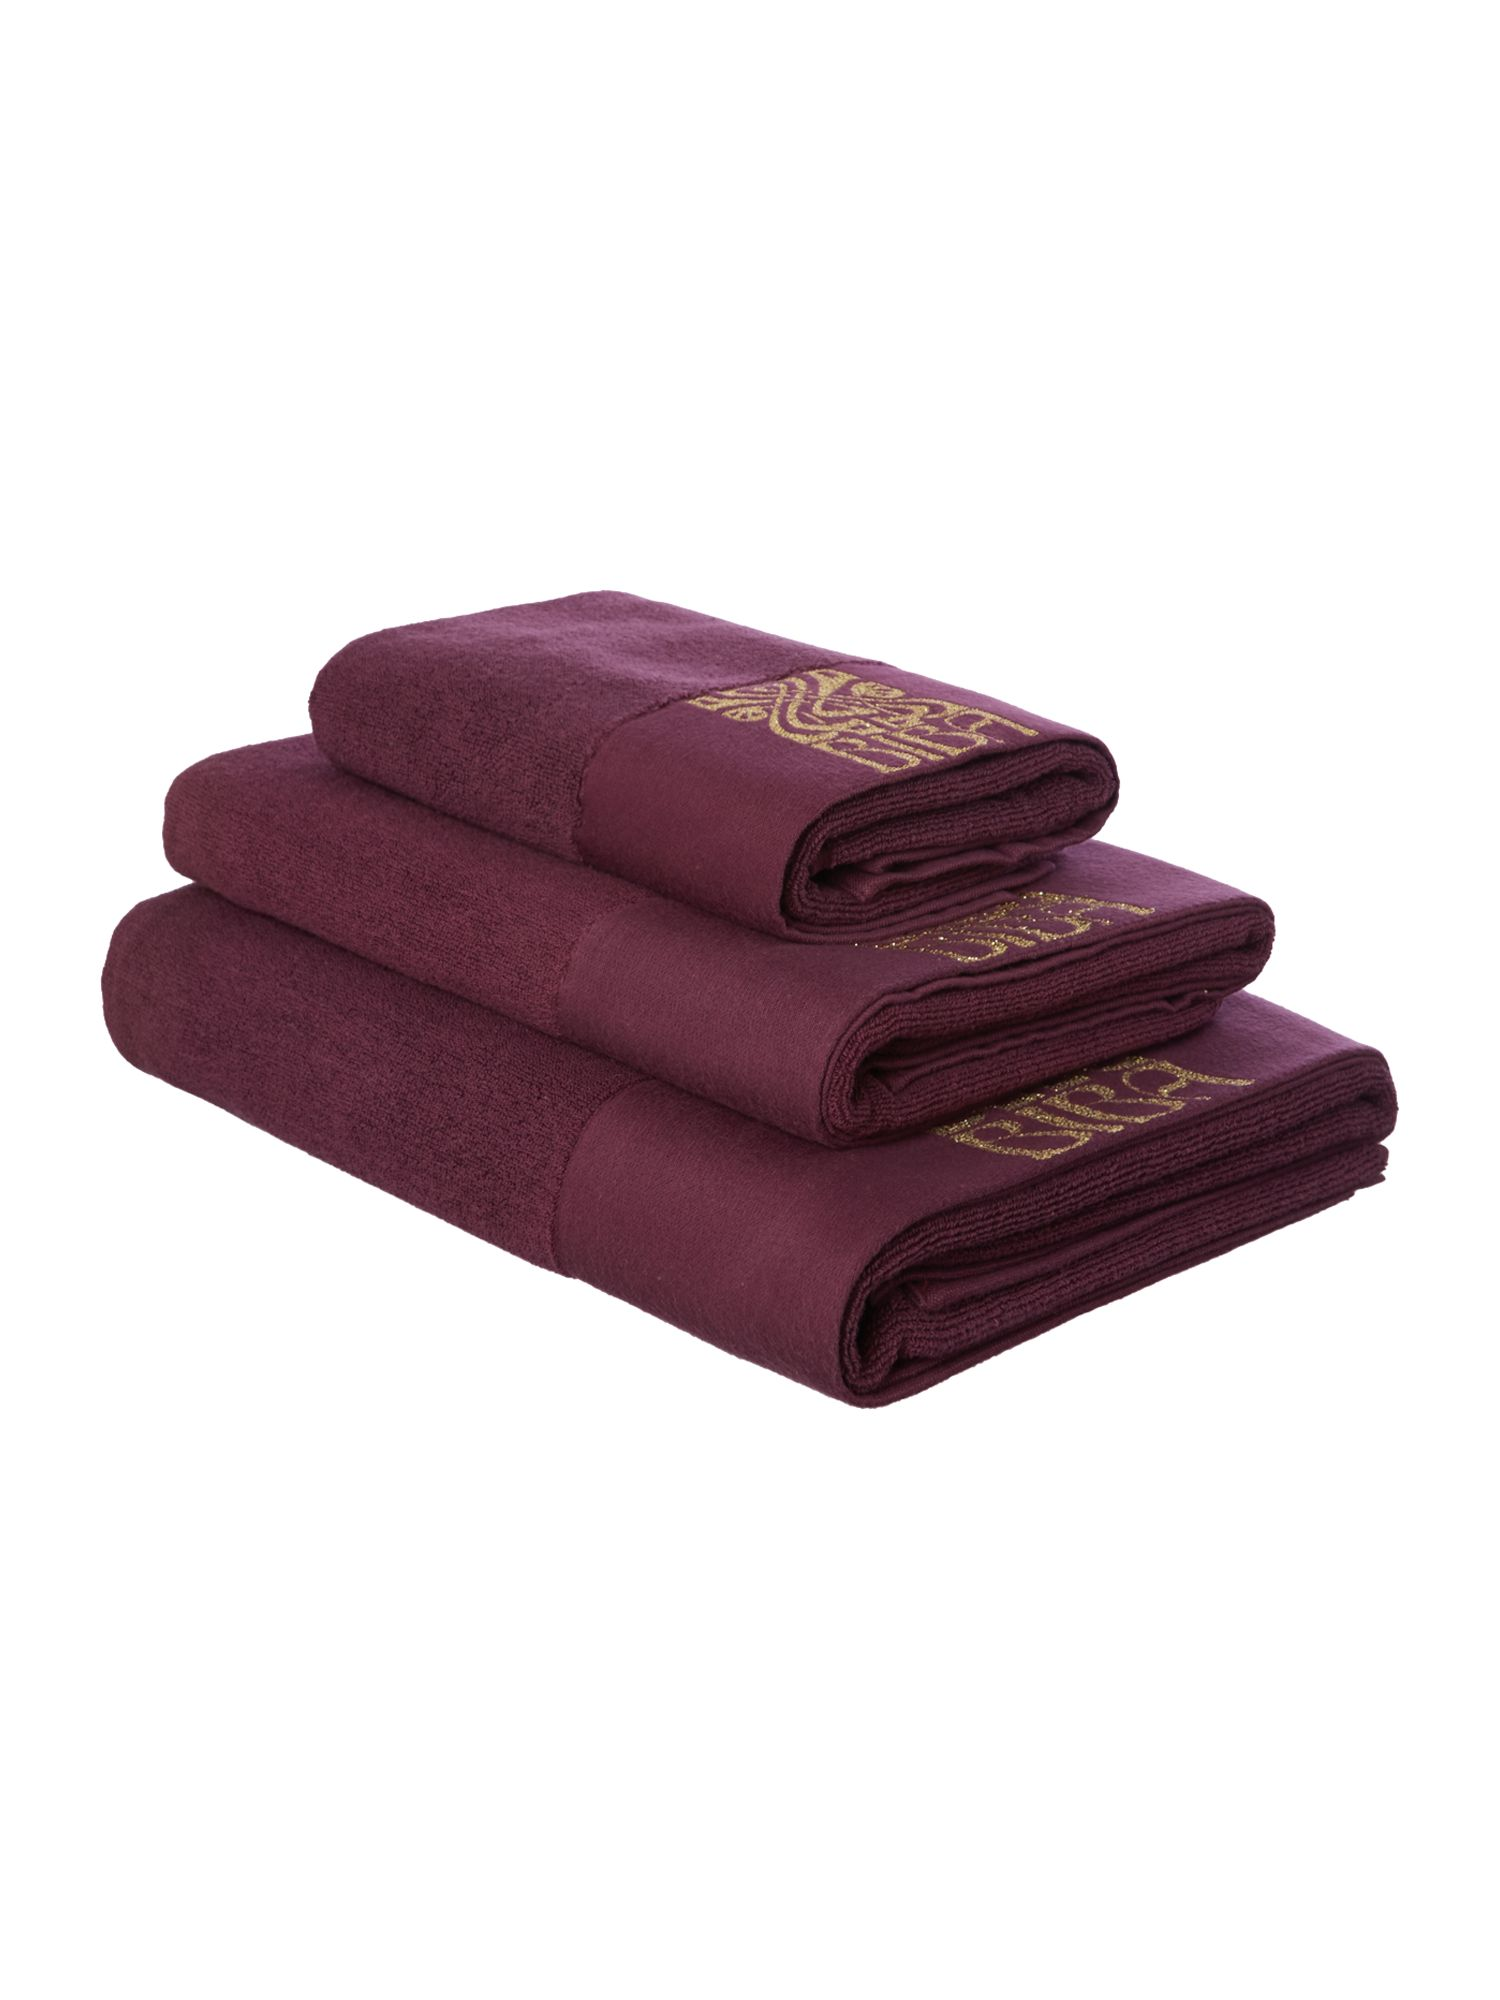 Gold logo towels in plum